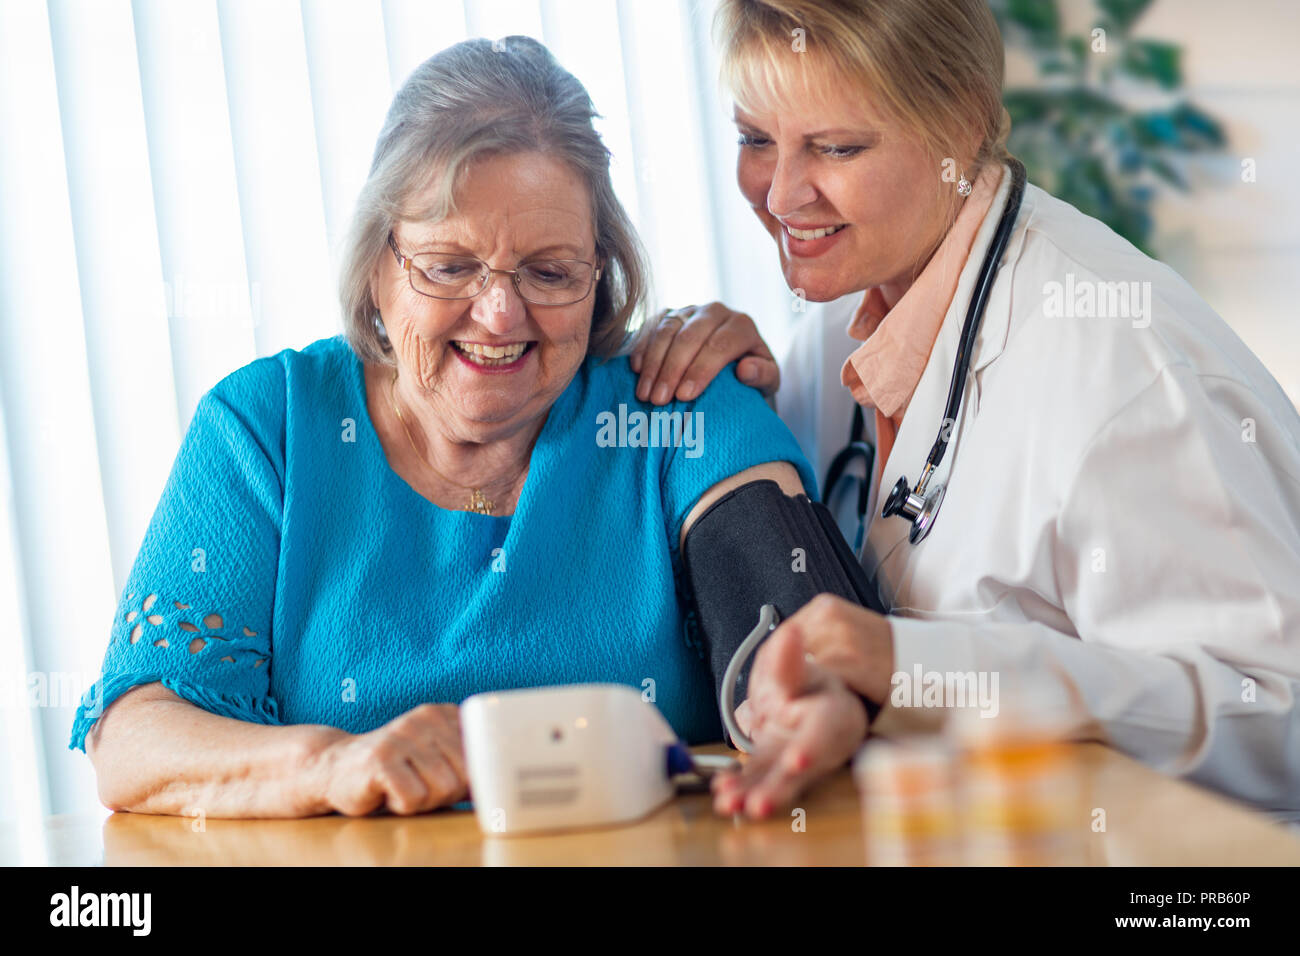 Senior Adult Woman Learning From Female Doctor to Use Blood Pressure Machine. - Stock Image